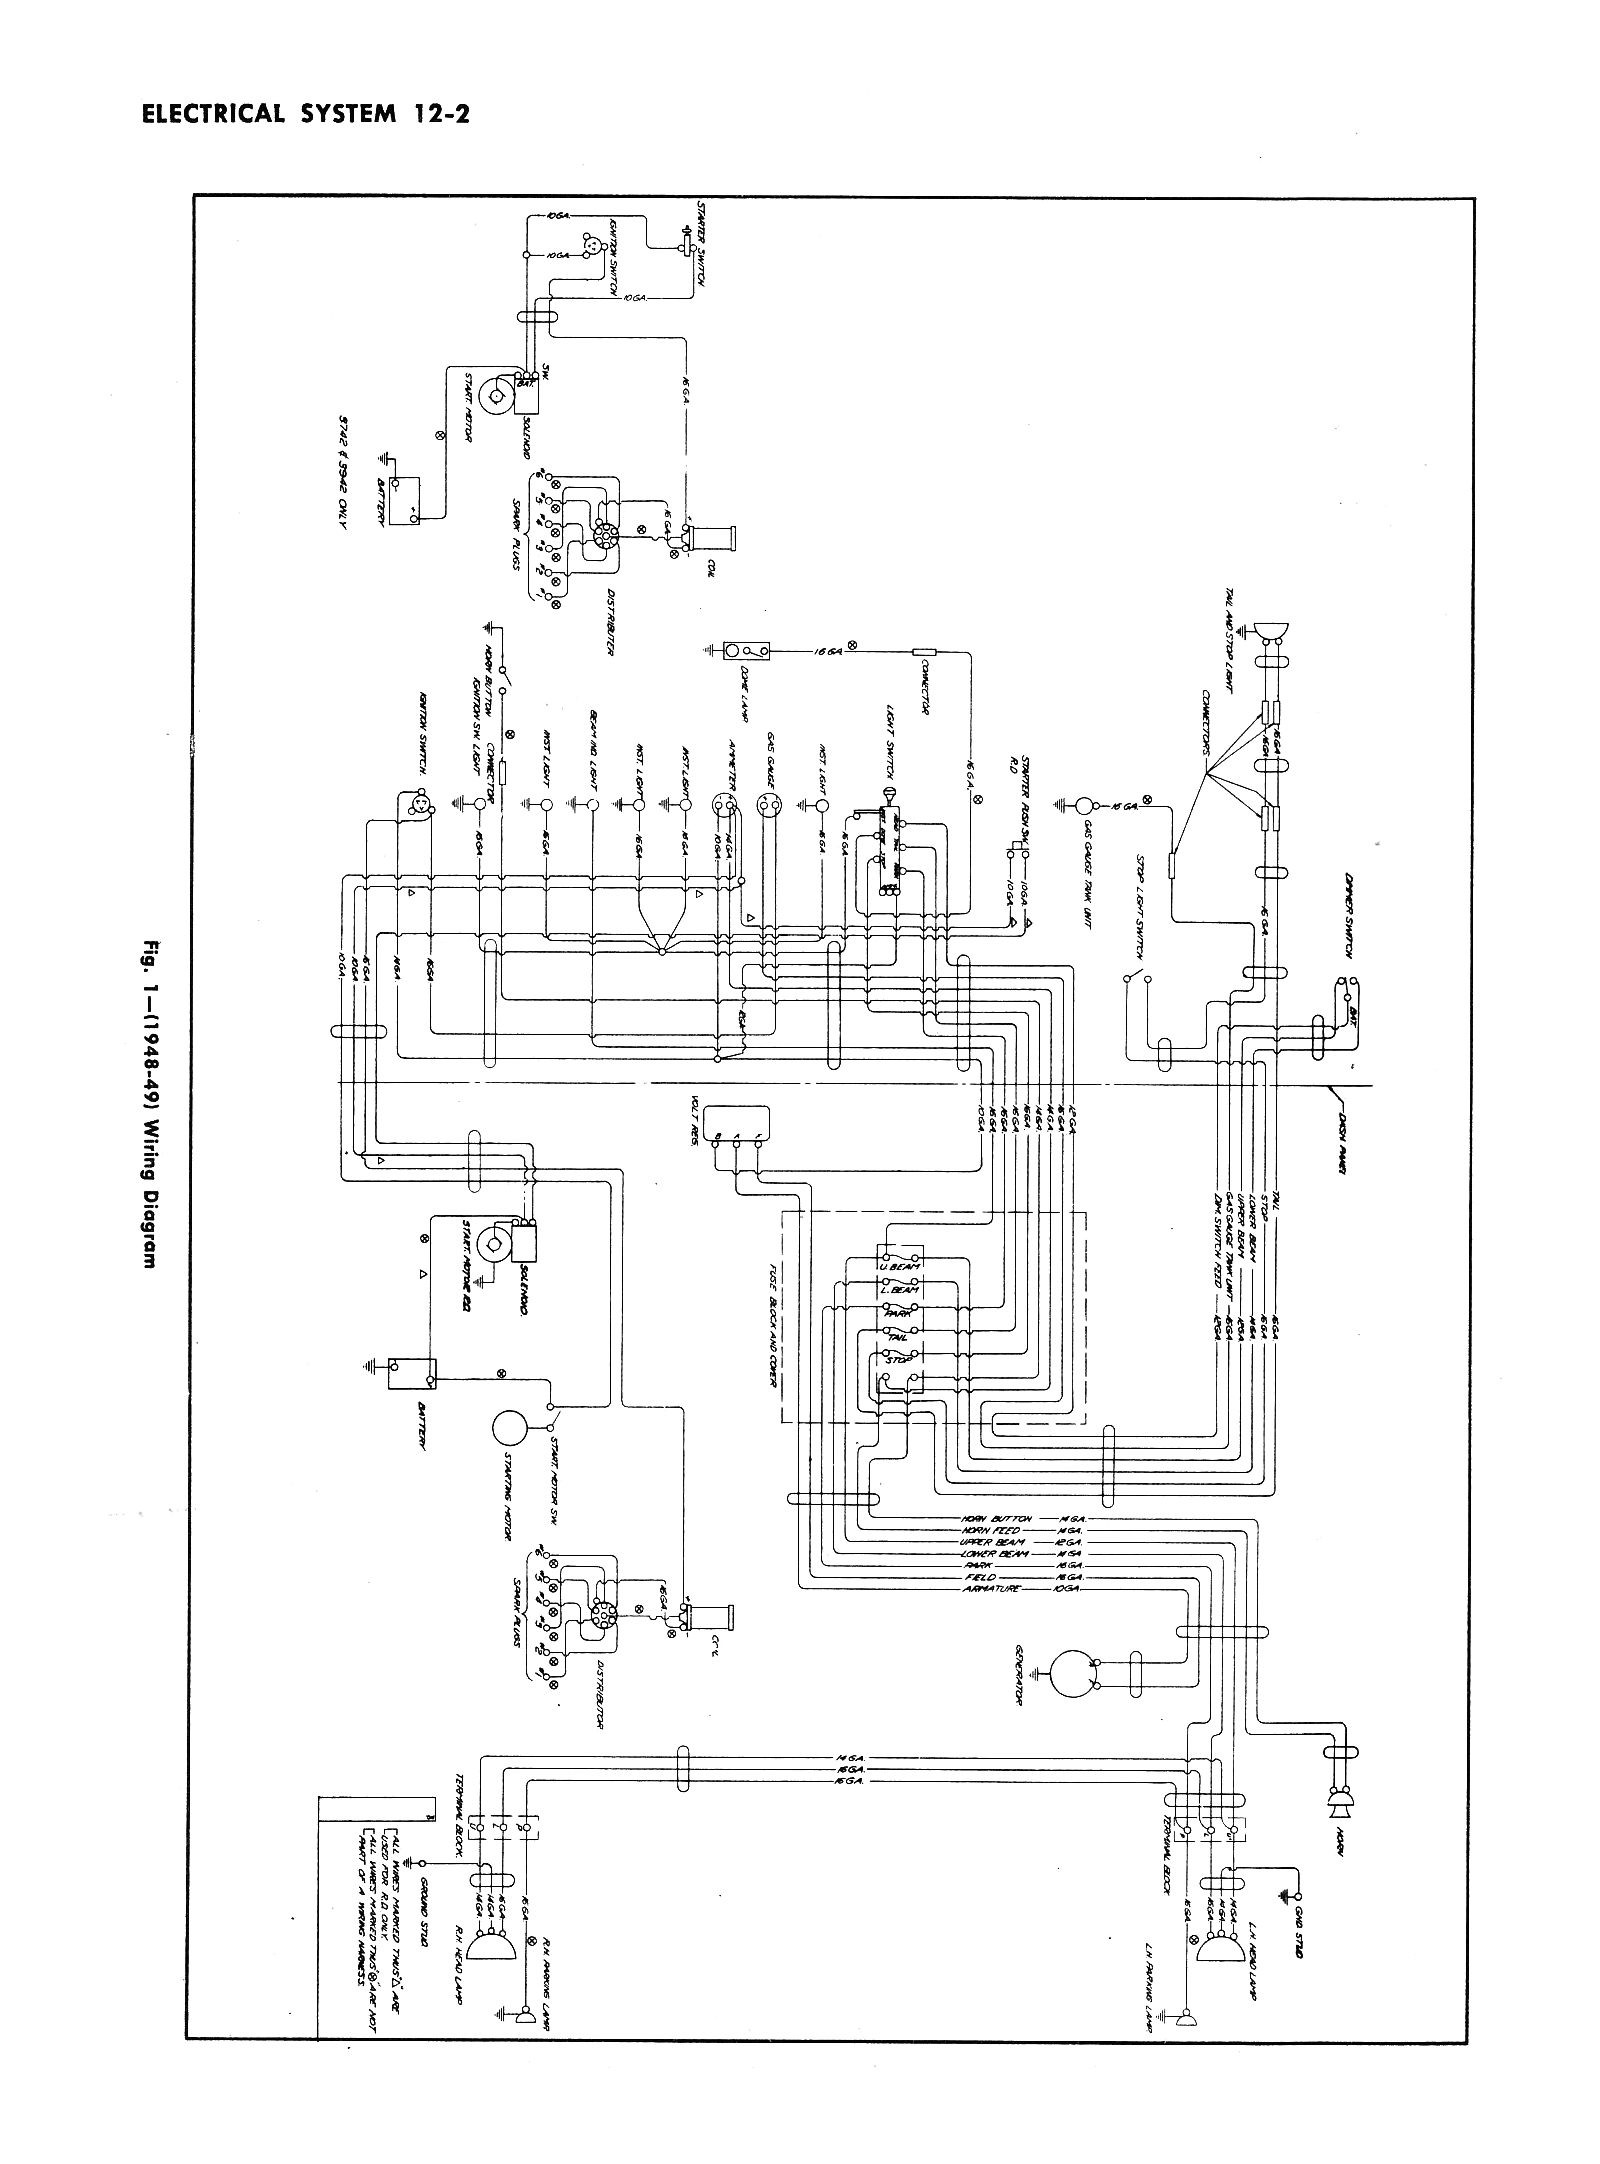 1950 chevy pickup wiring diagram